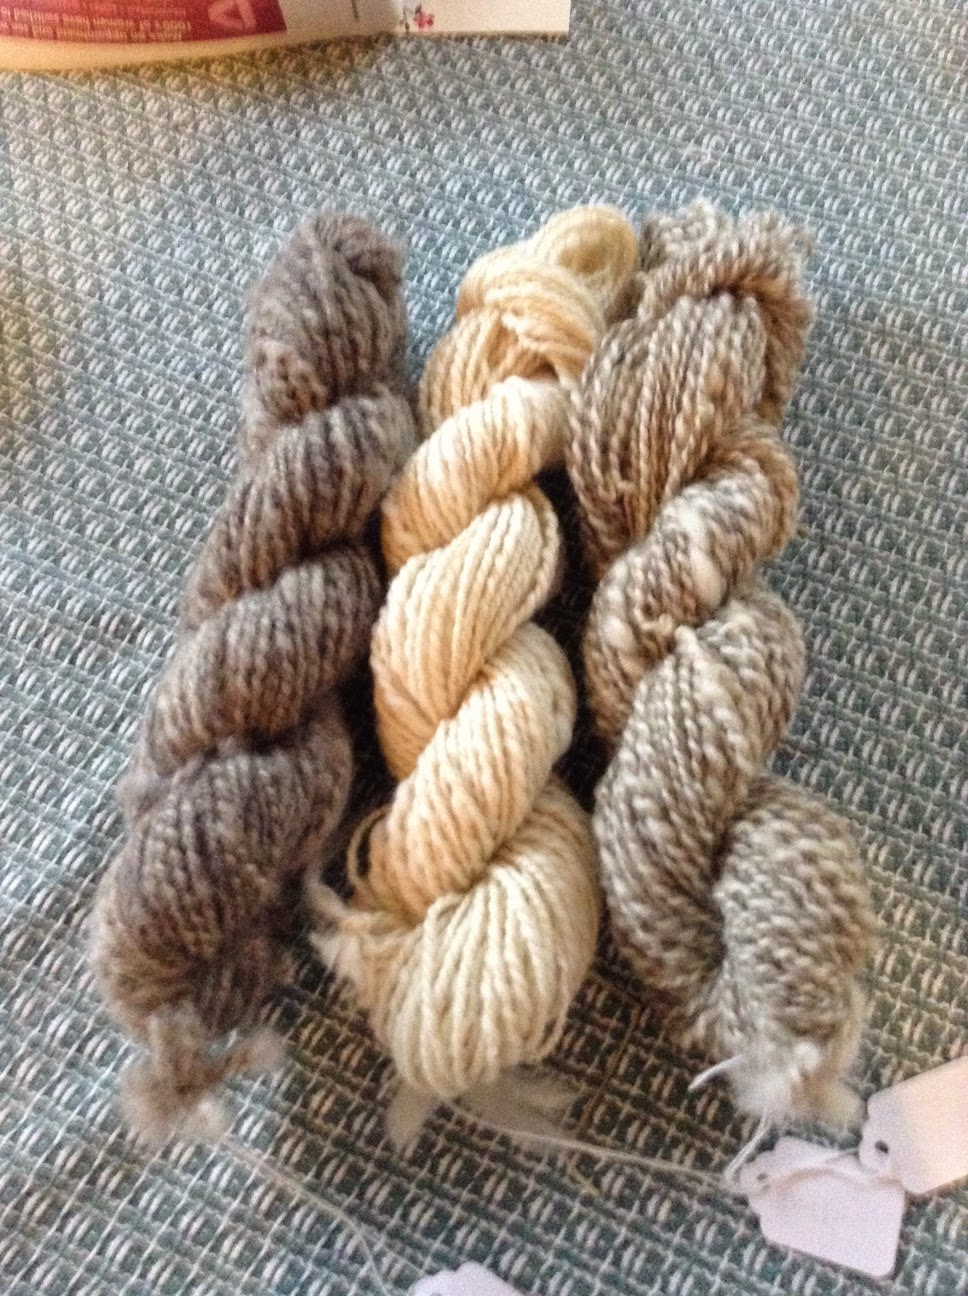 Wool from the flock will be for knitting projects